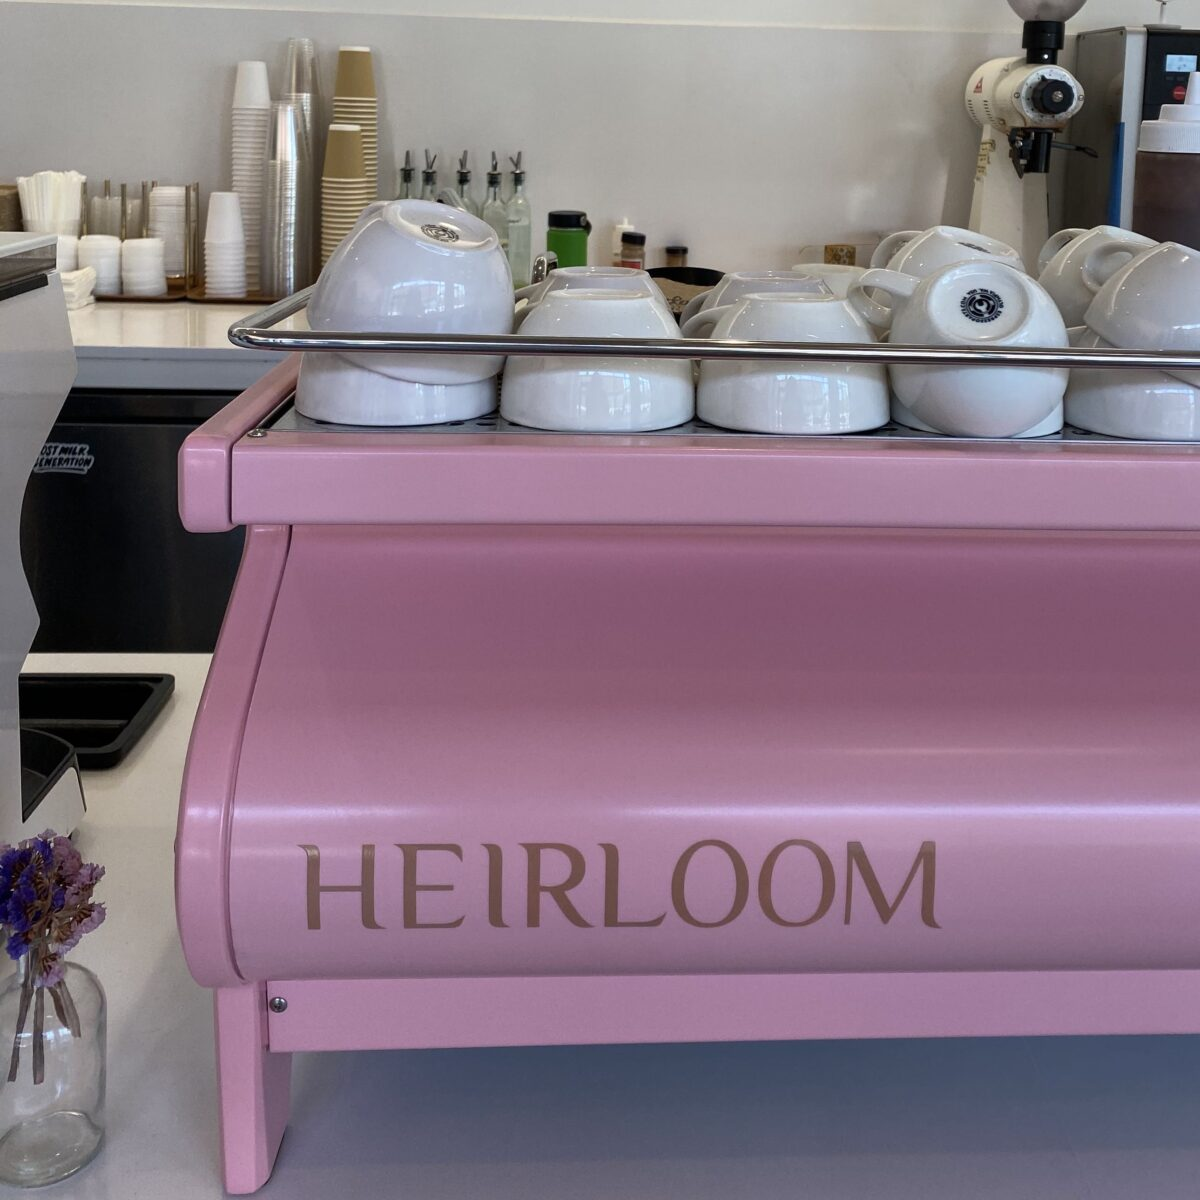 """This photograph features a pink coffee machine that says """"HEIRLOOM"""" in all caps, with white mugs sitting on it."""